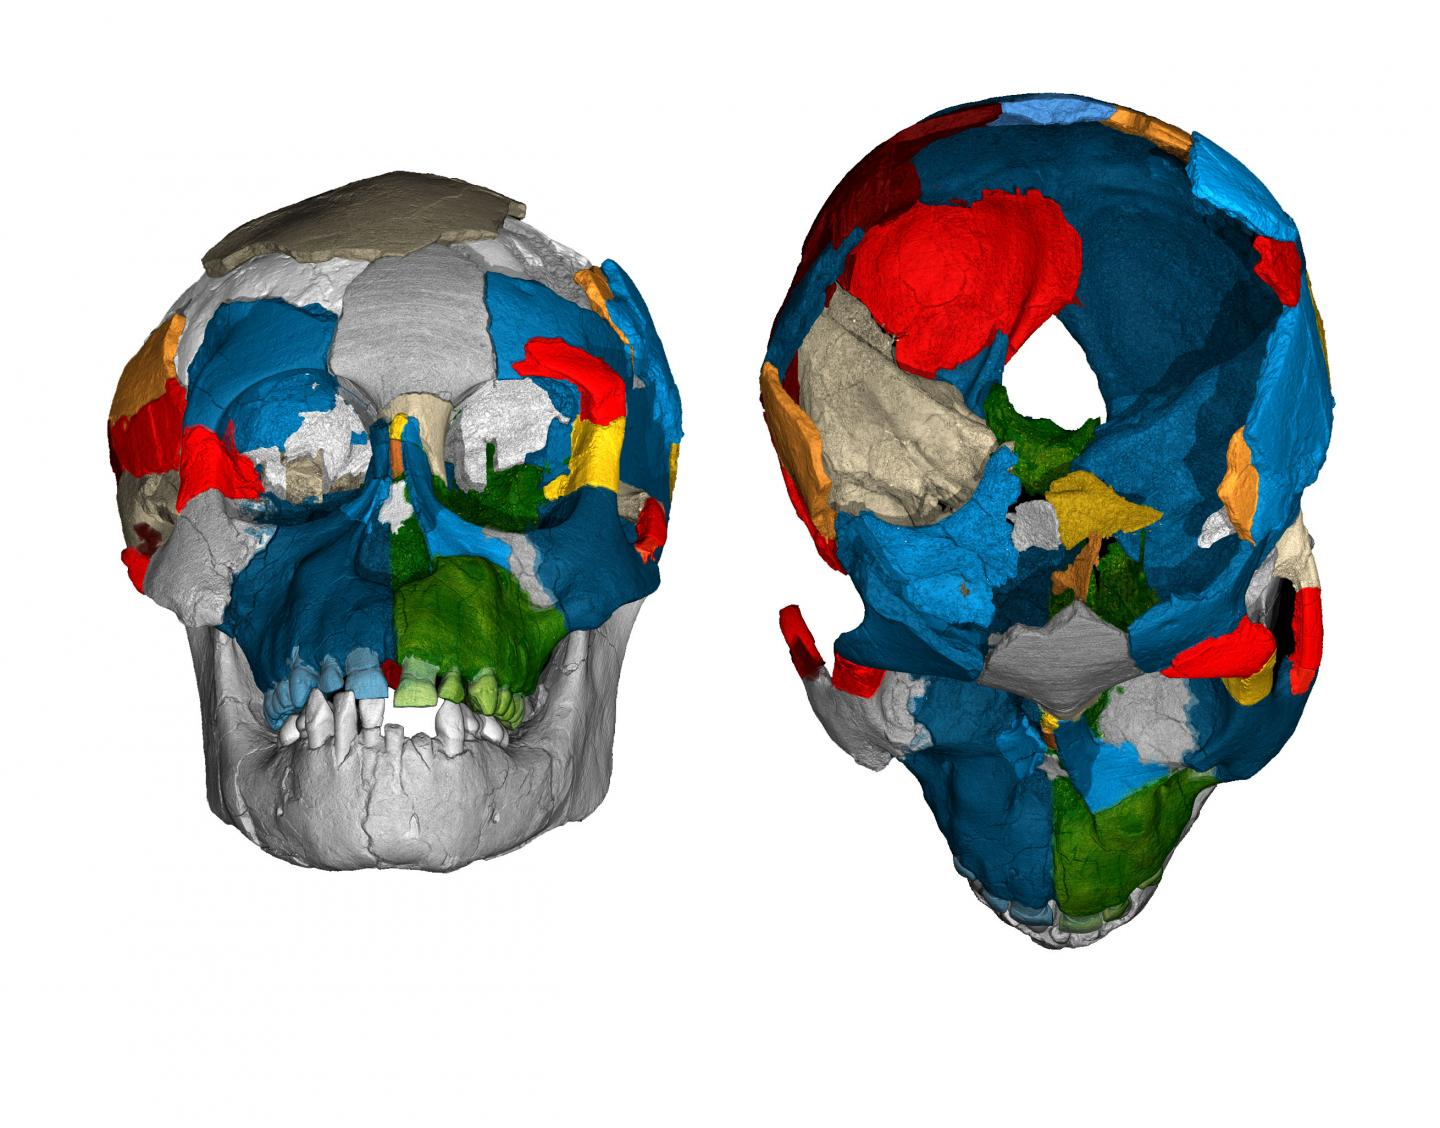 What Brain Images Of The Three-Million-Year Old Lucy Species Just Revealed